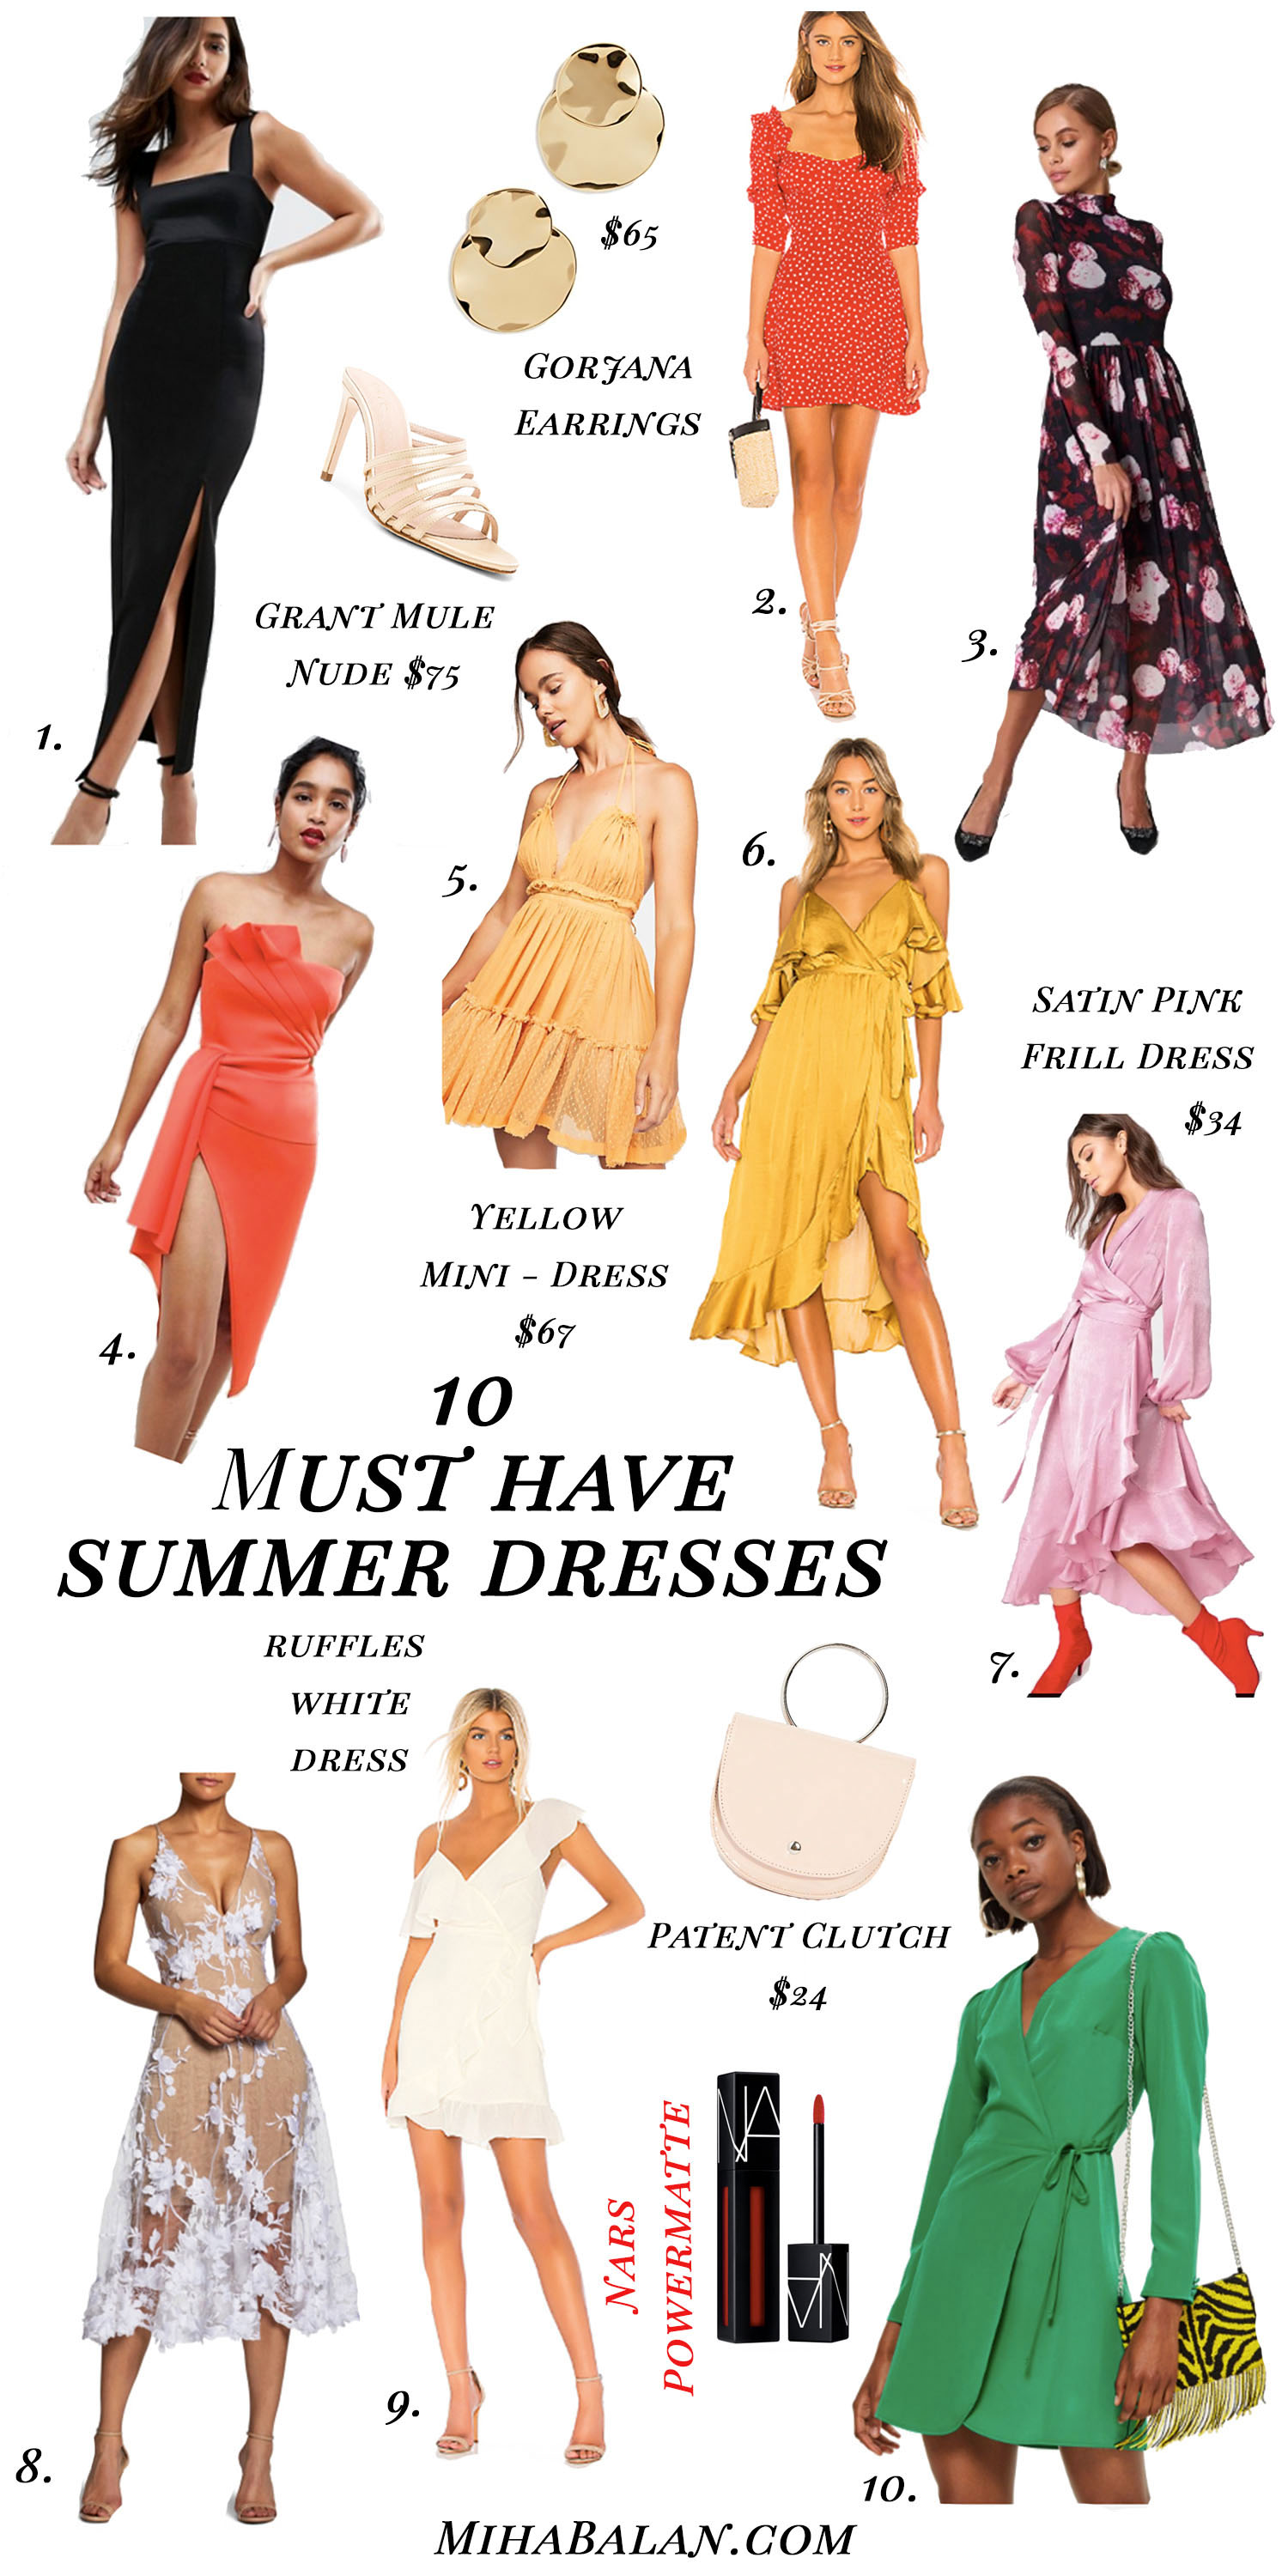 10 summer must have dresses, summer essentials, evening dresses, wedding dresses, casual dresses, stylish dresses